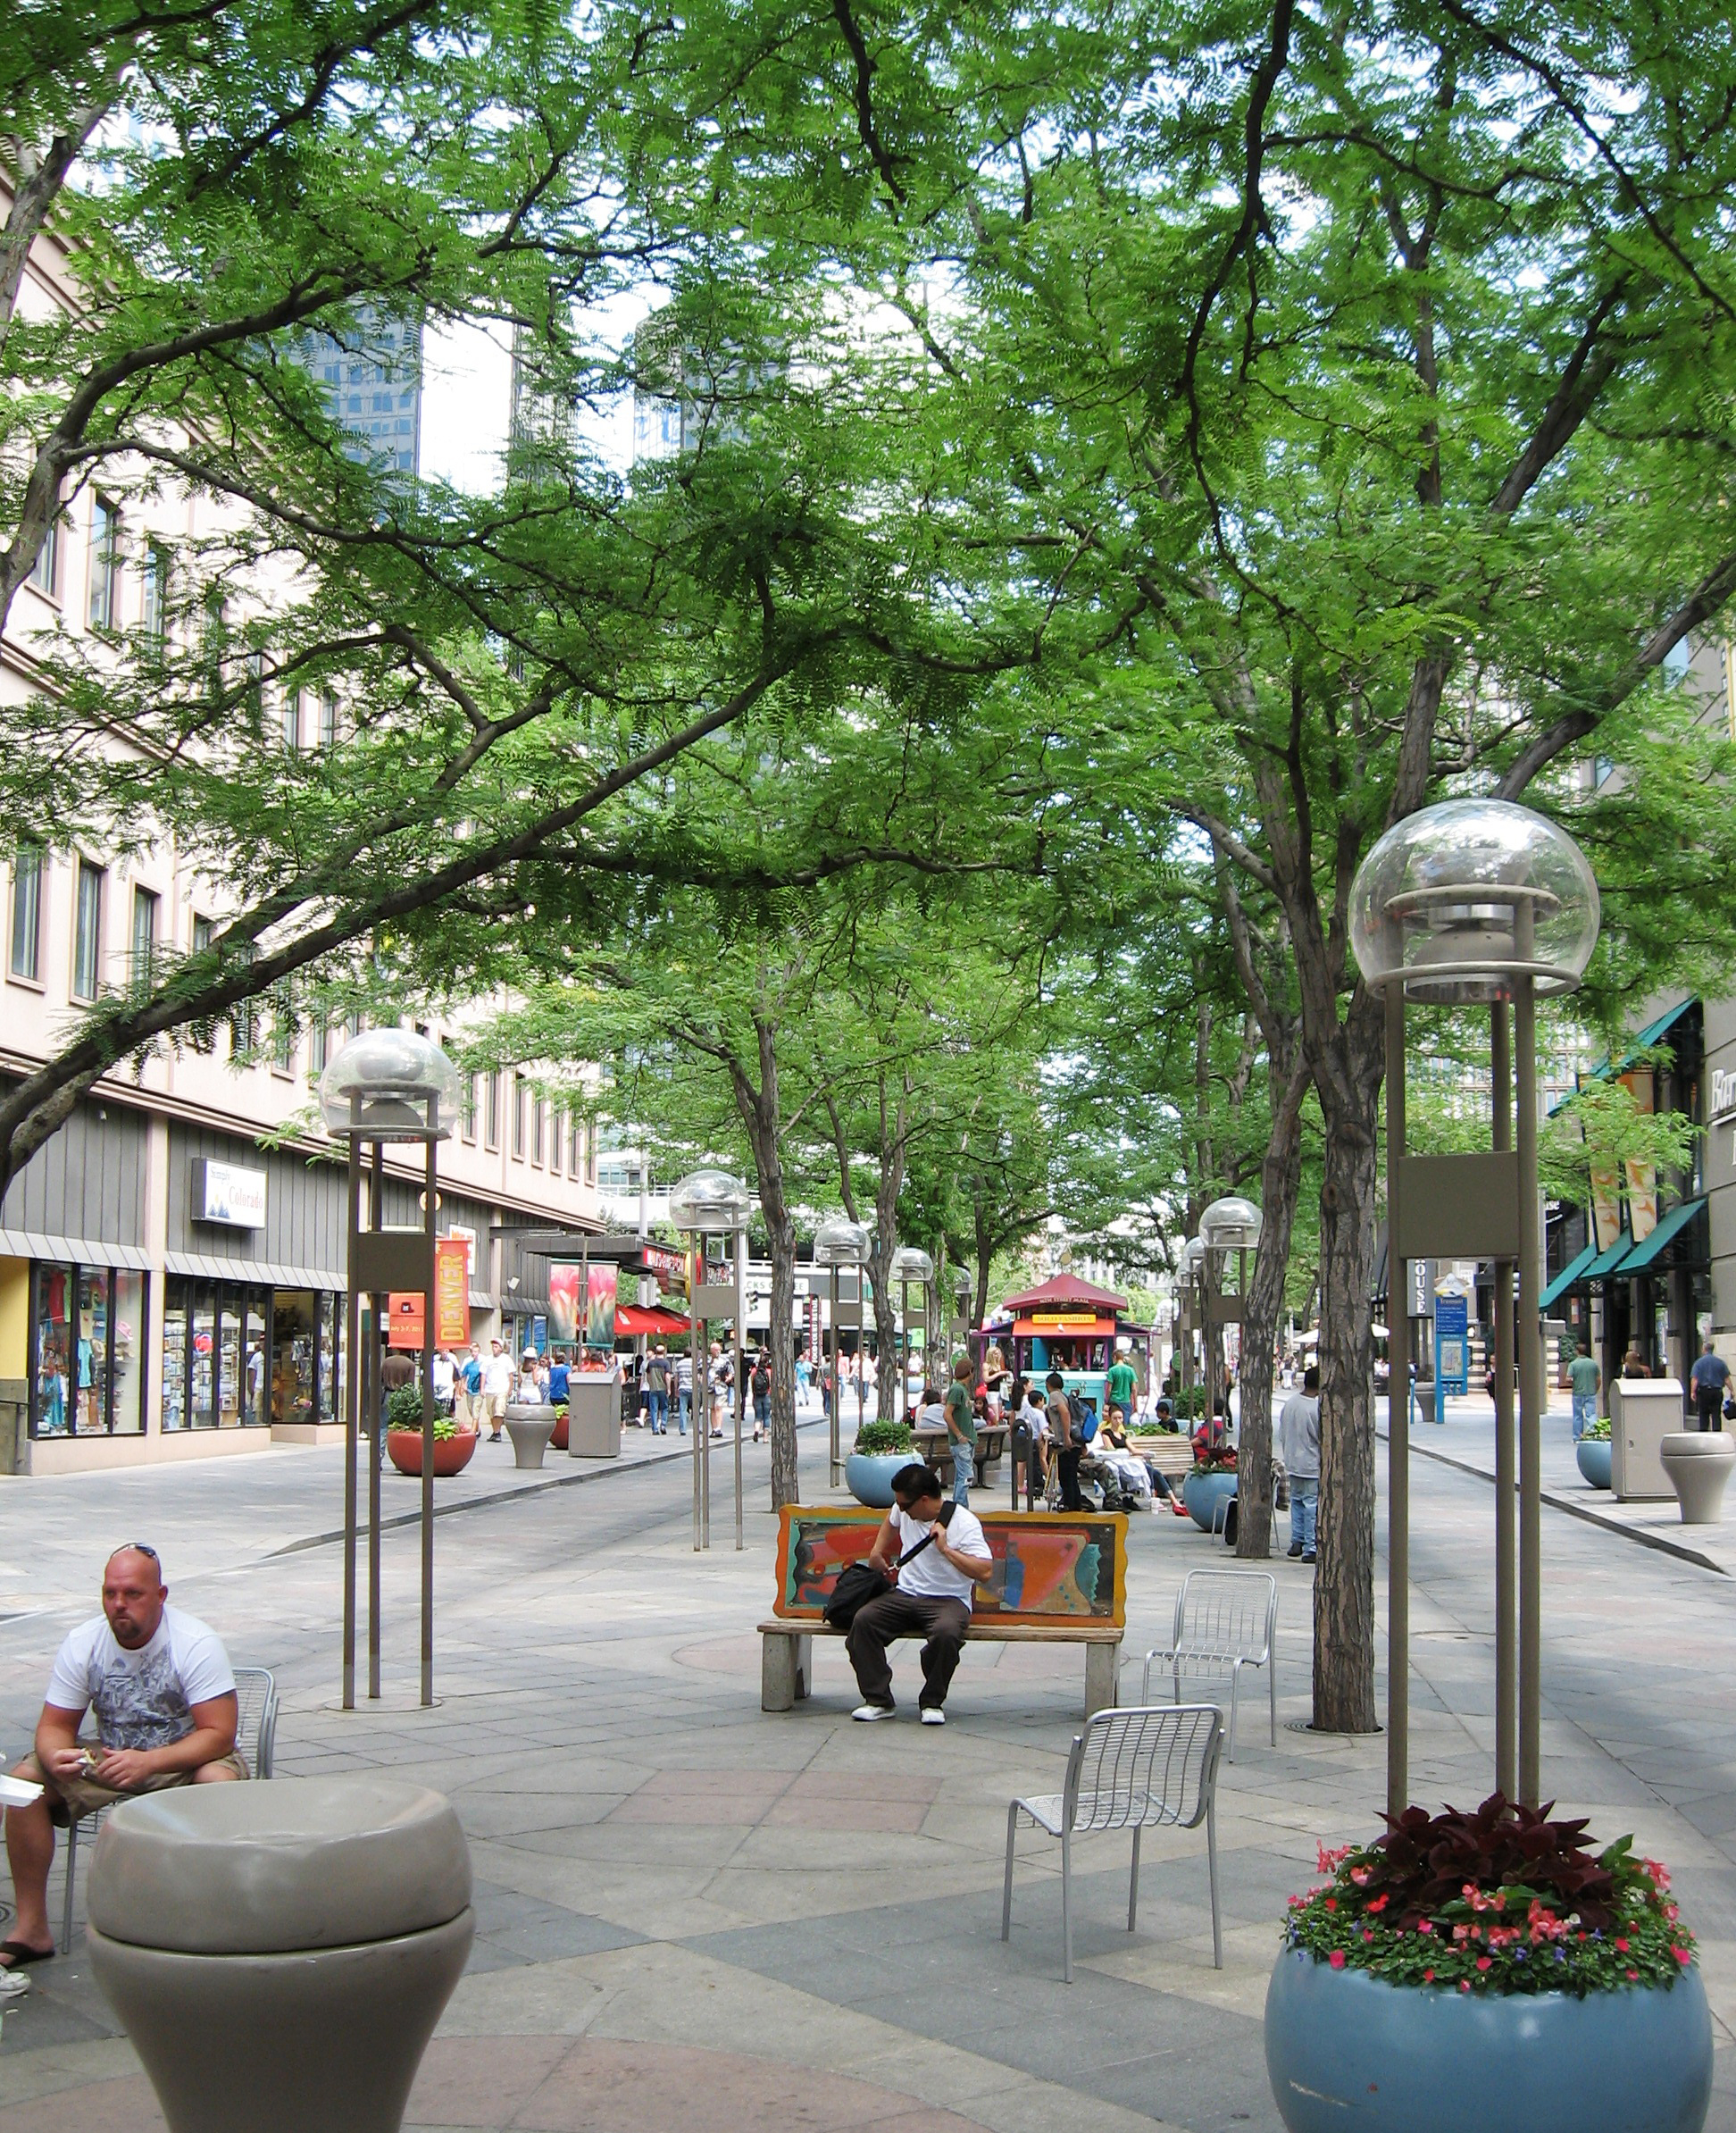 Denver's 16th Street Mall today. Photo credit: © OLIN